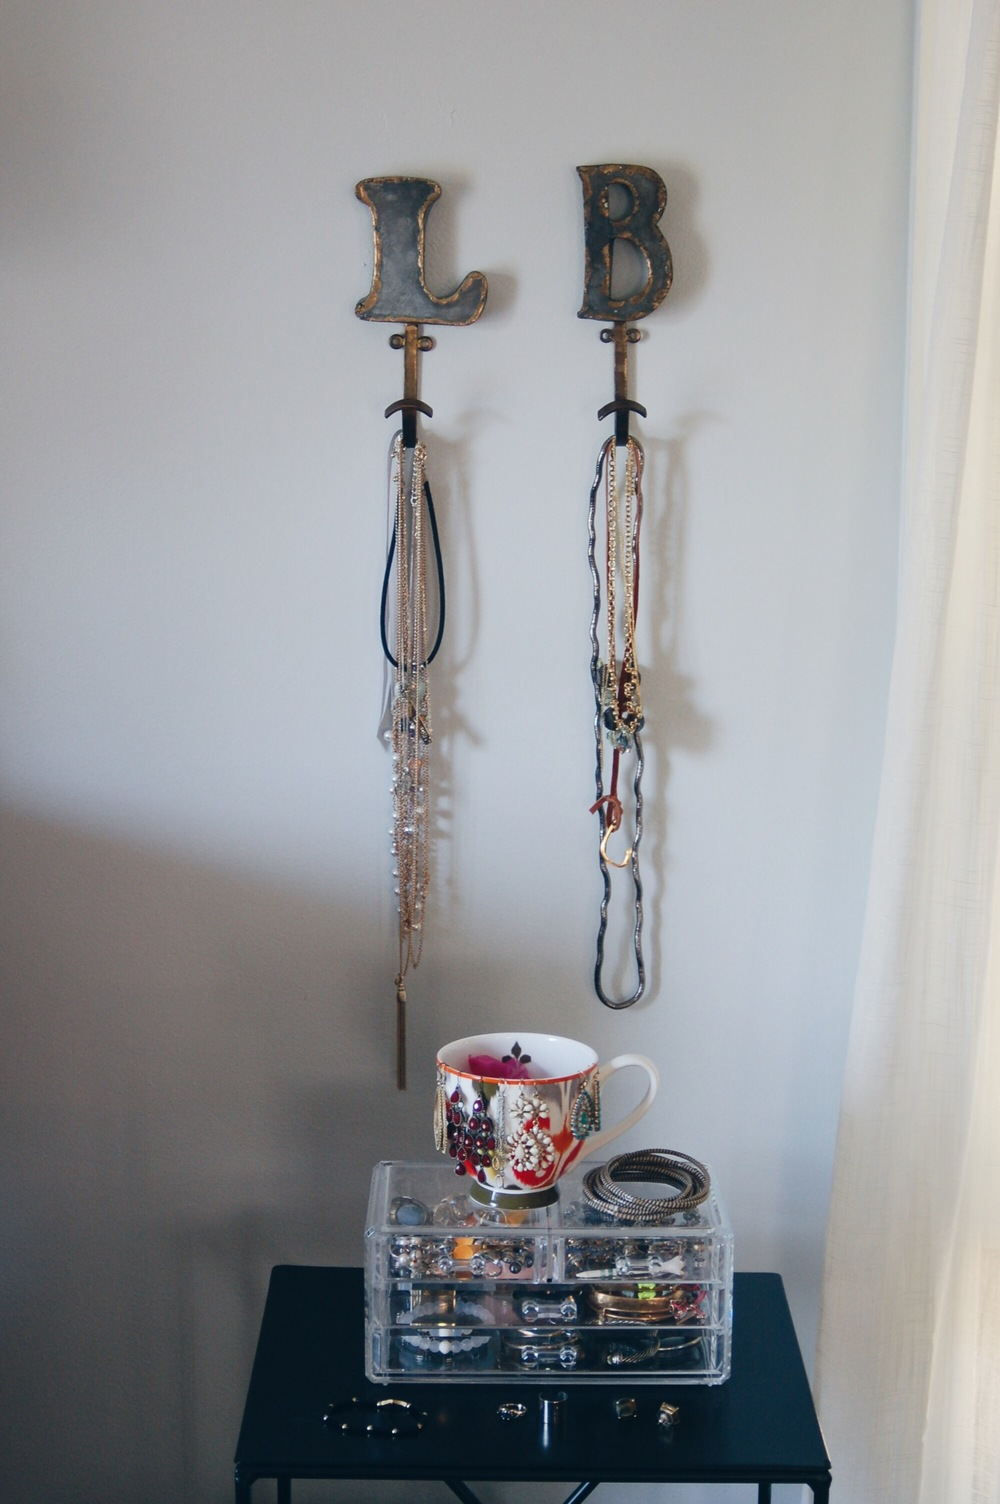 anthro initial hooks become lovely necklace holders.